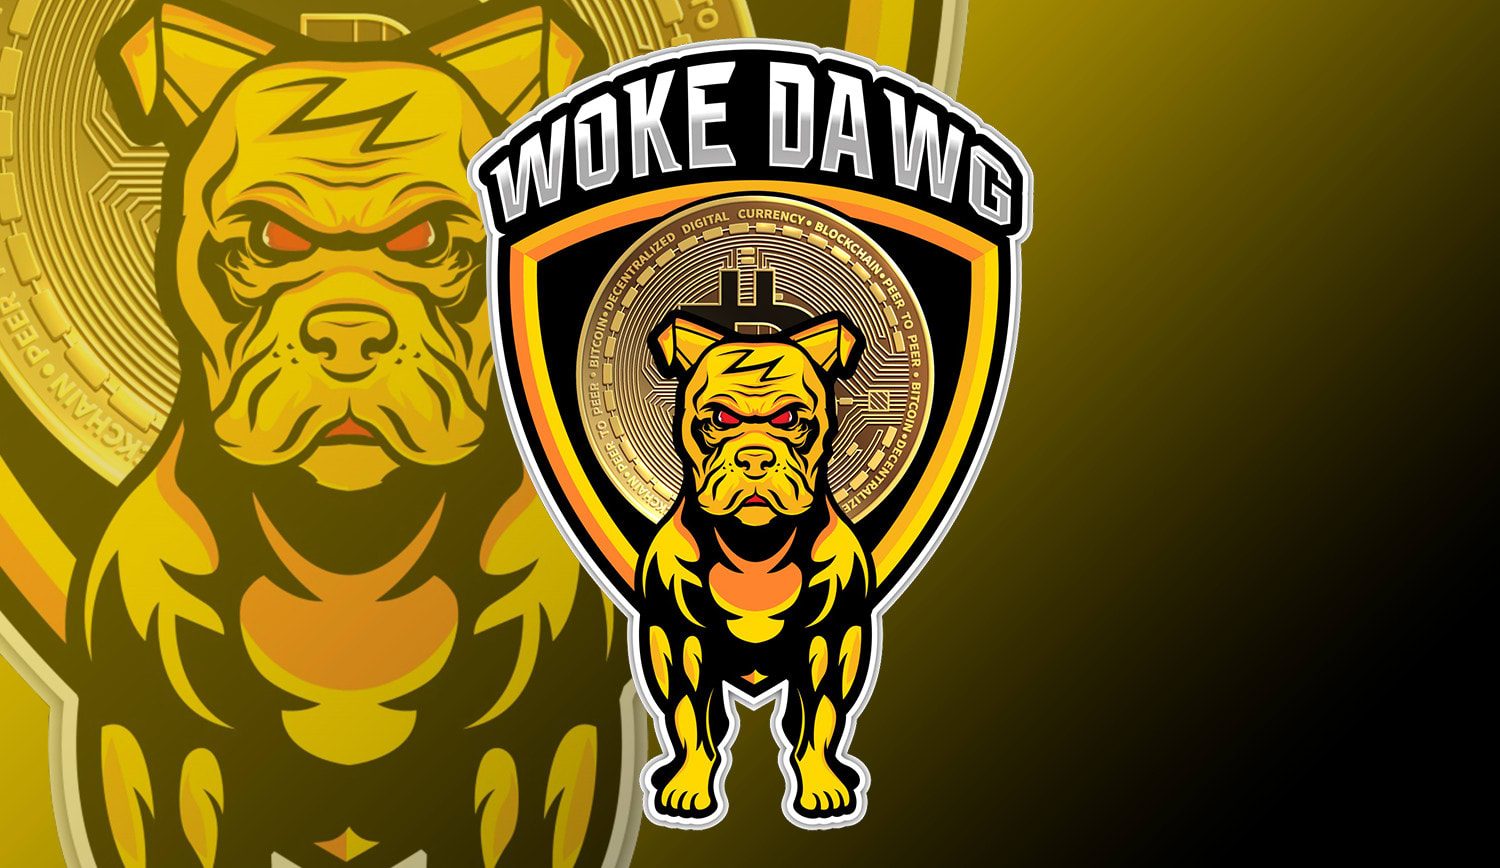 I will design mascot sport logo for team and pro leagues